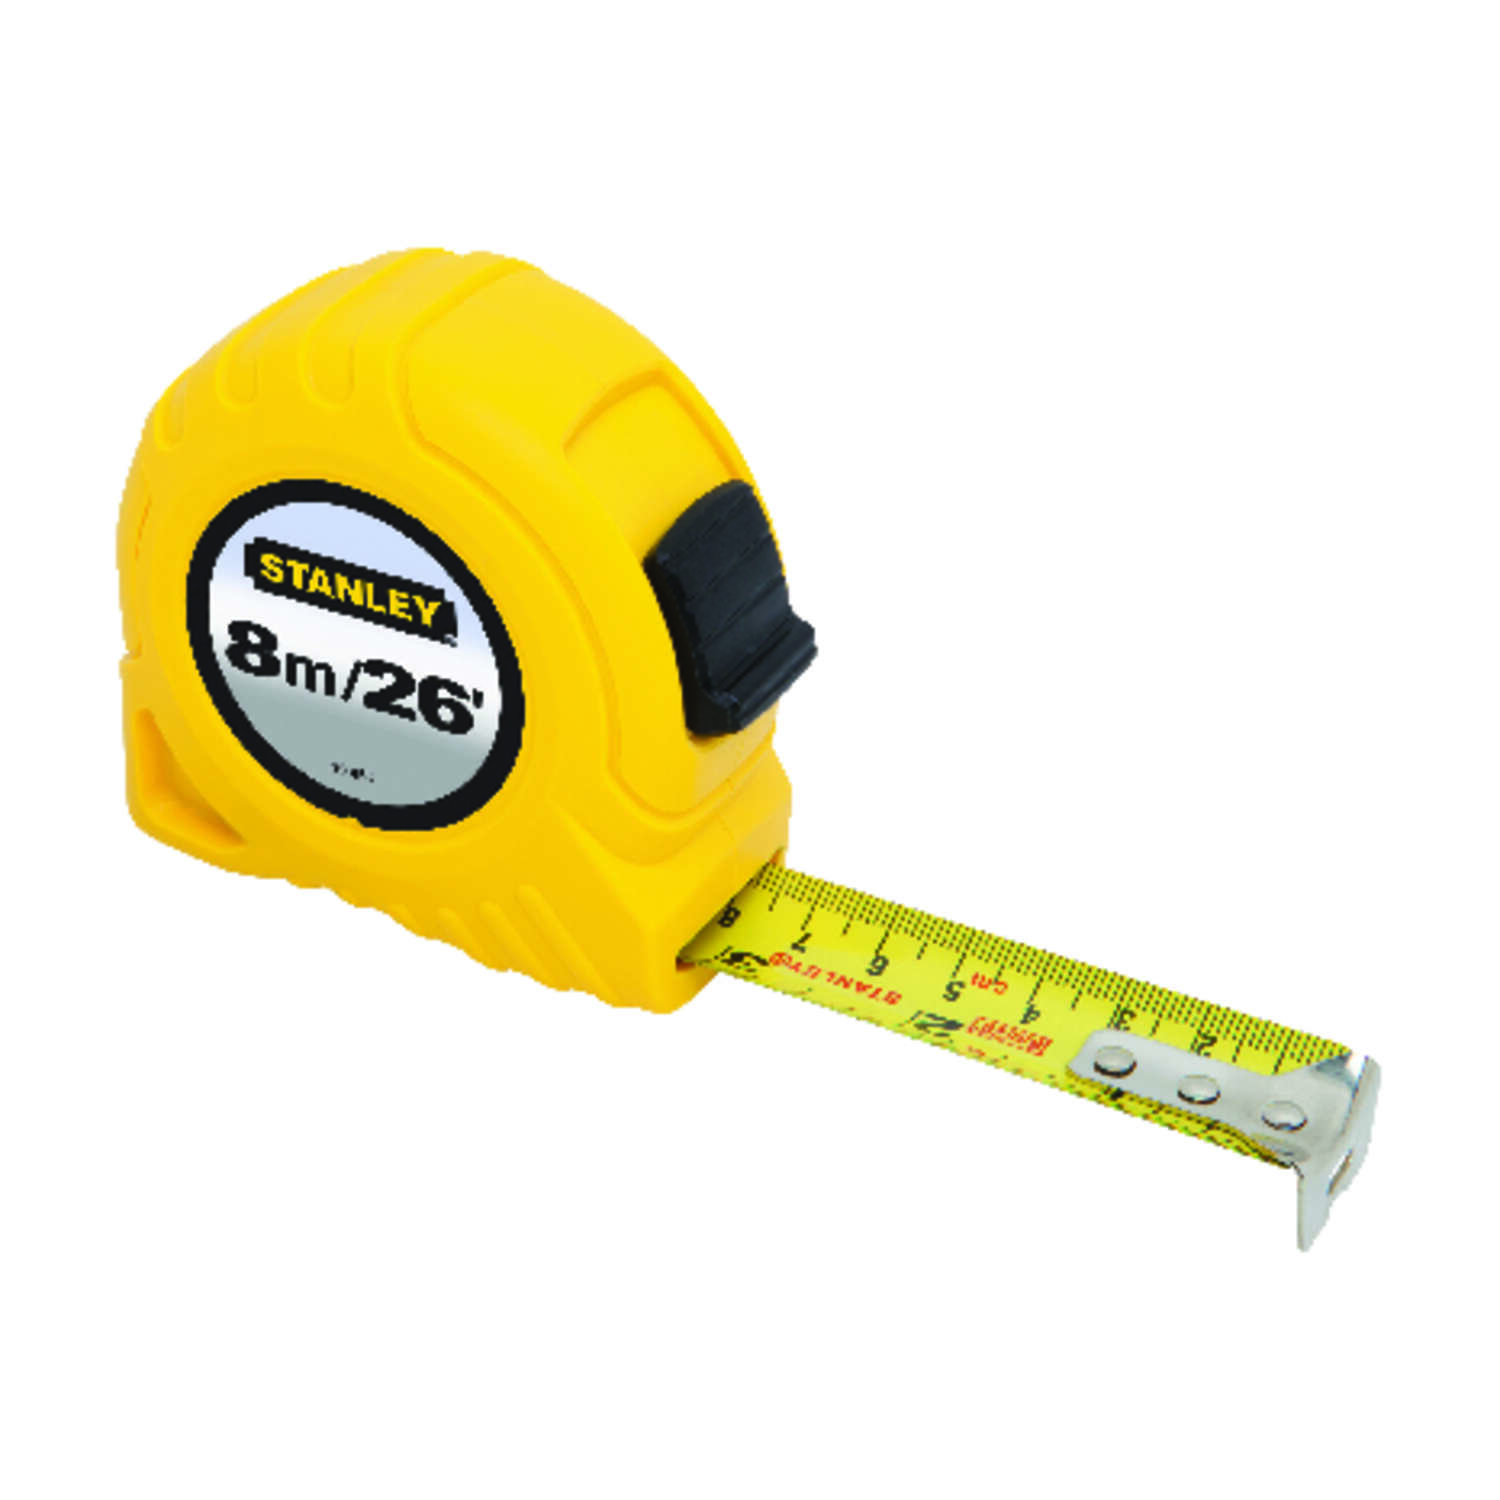 Stanley  26 ft. L x 1 in. W Tape Measure  1 pk